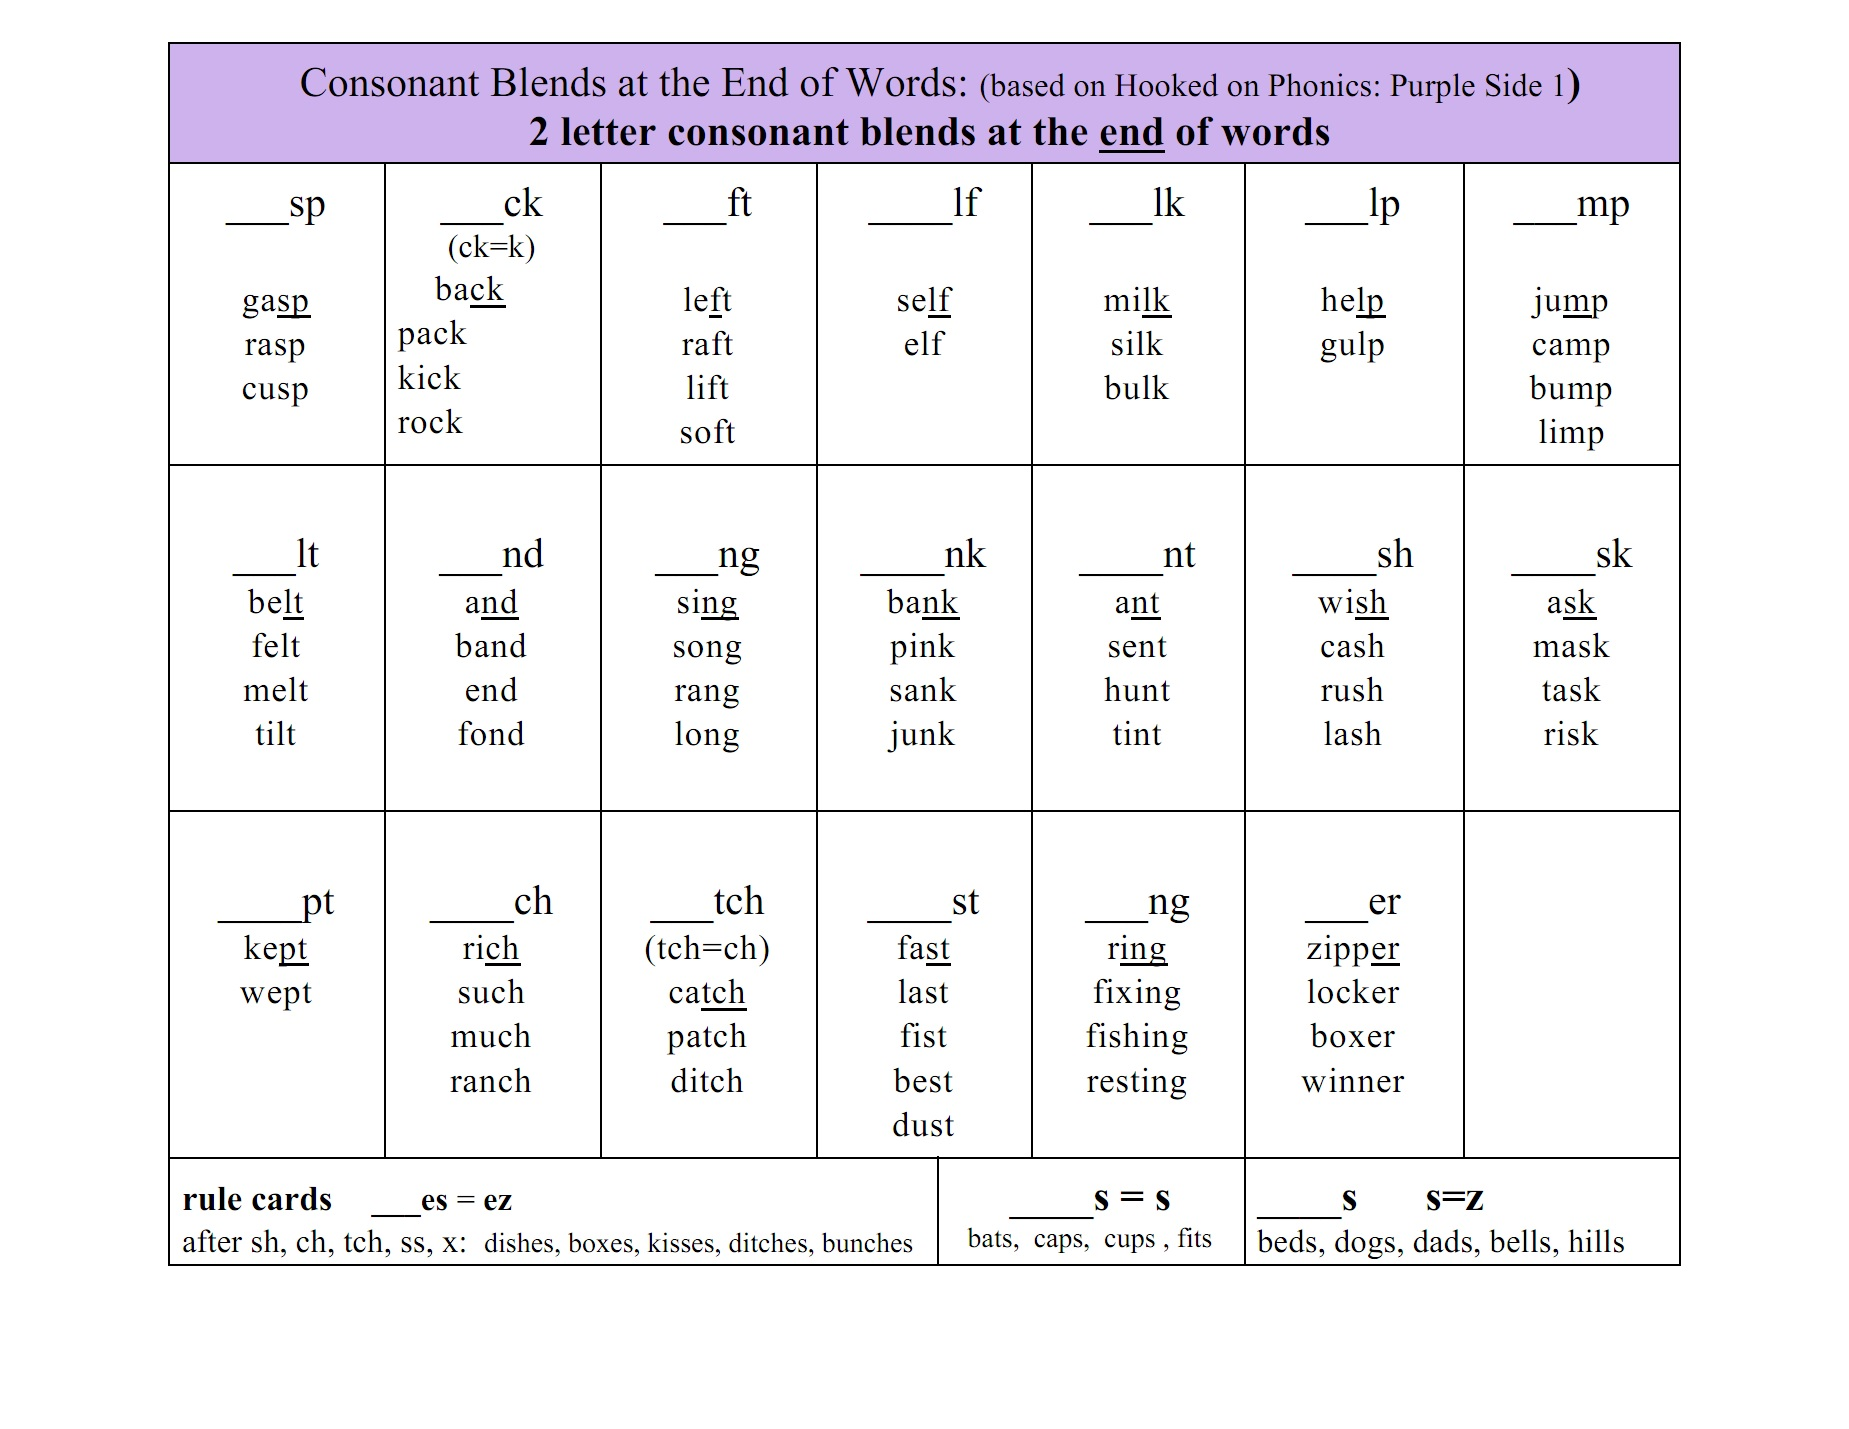 rin table copy: Ending blends word lists